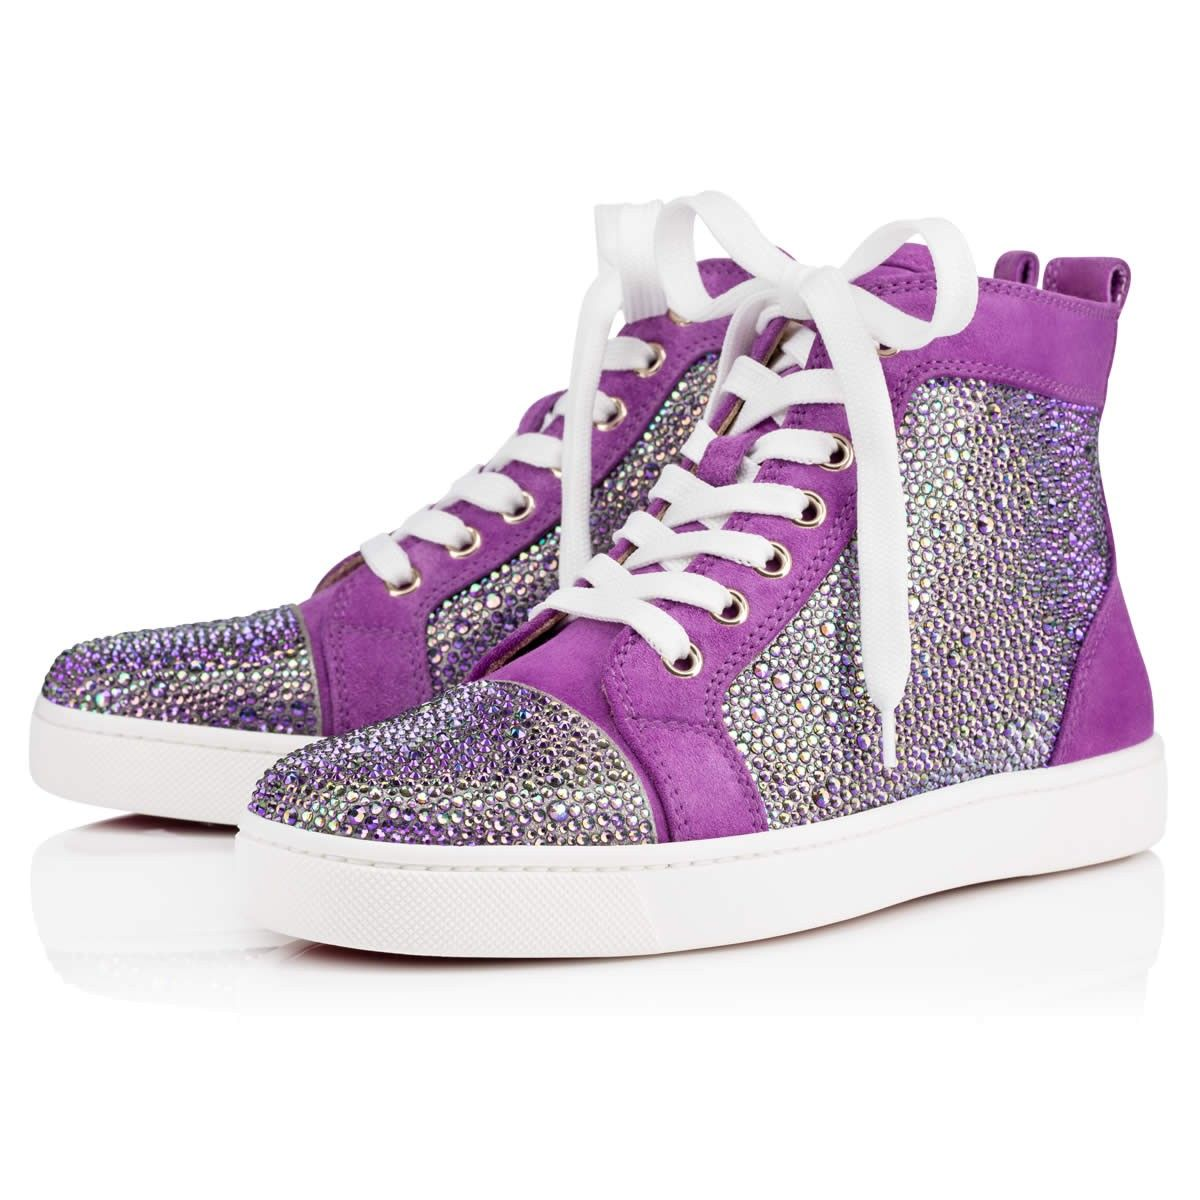 Louis Strass Woman's Flat Version Cryst Paradise Strass